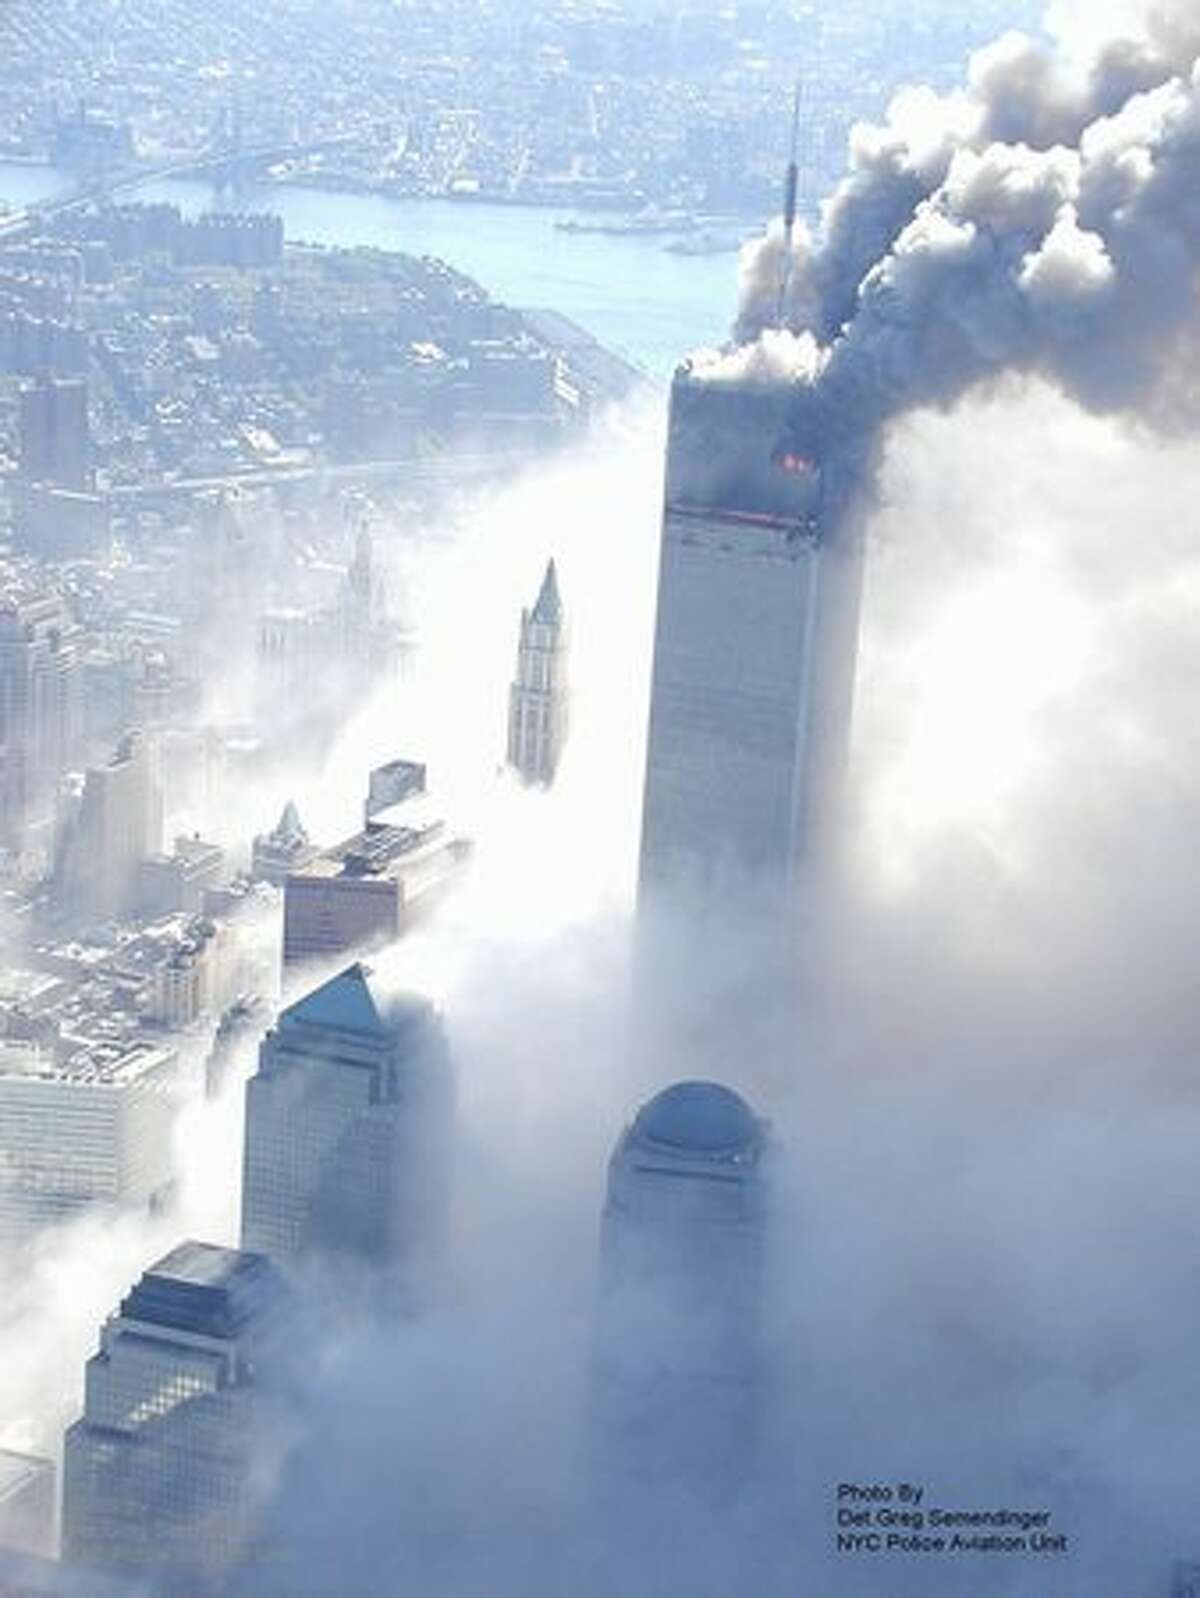 This photo taken Sept. 11, 2001 by the New York City Police Department and obtained by ABC News under the Freedom of Information Act years later shows a World Trade Center tower burning after it was hit by a passenger jet in New York. (AP Photo/NYPD via ABC News, Det. Greg Semendinger)